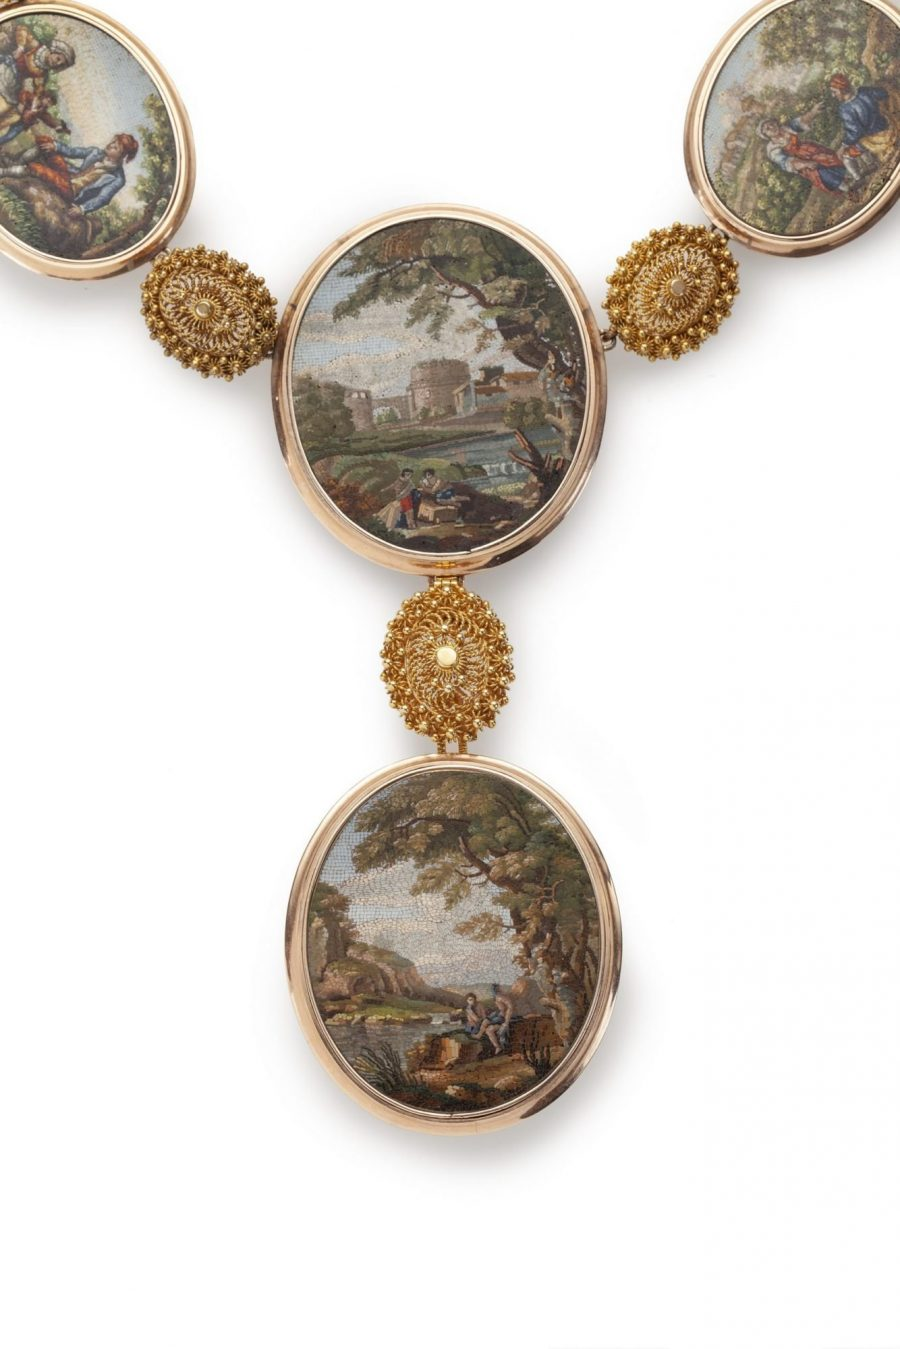 Micromosaic necklace 19th century